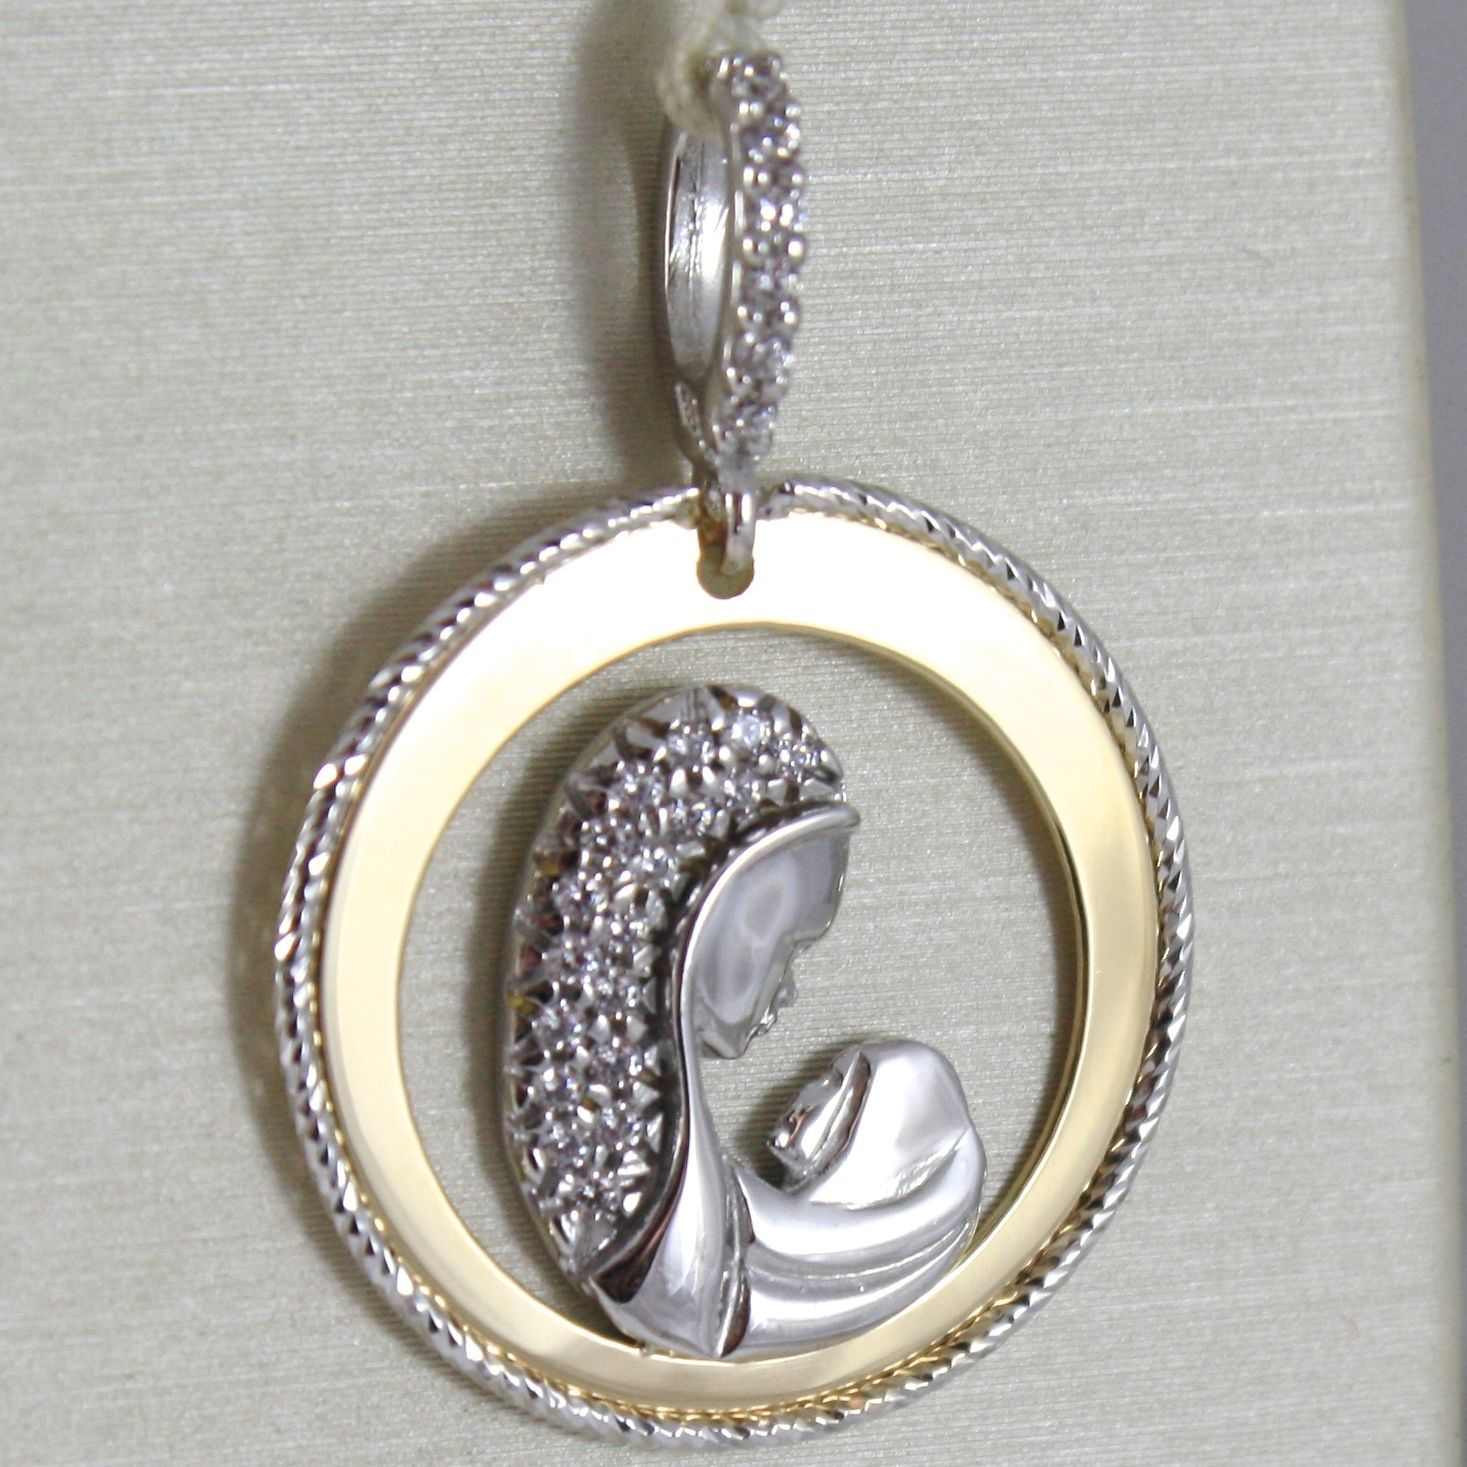 PENDANT MEDAL ROUND YELLOW GOLD WHITE 750 18K Mary jane Jesus ZIRCON, WORKED